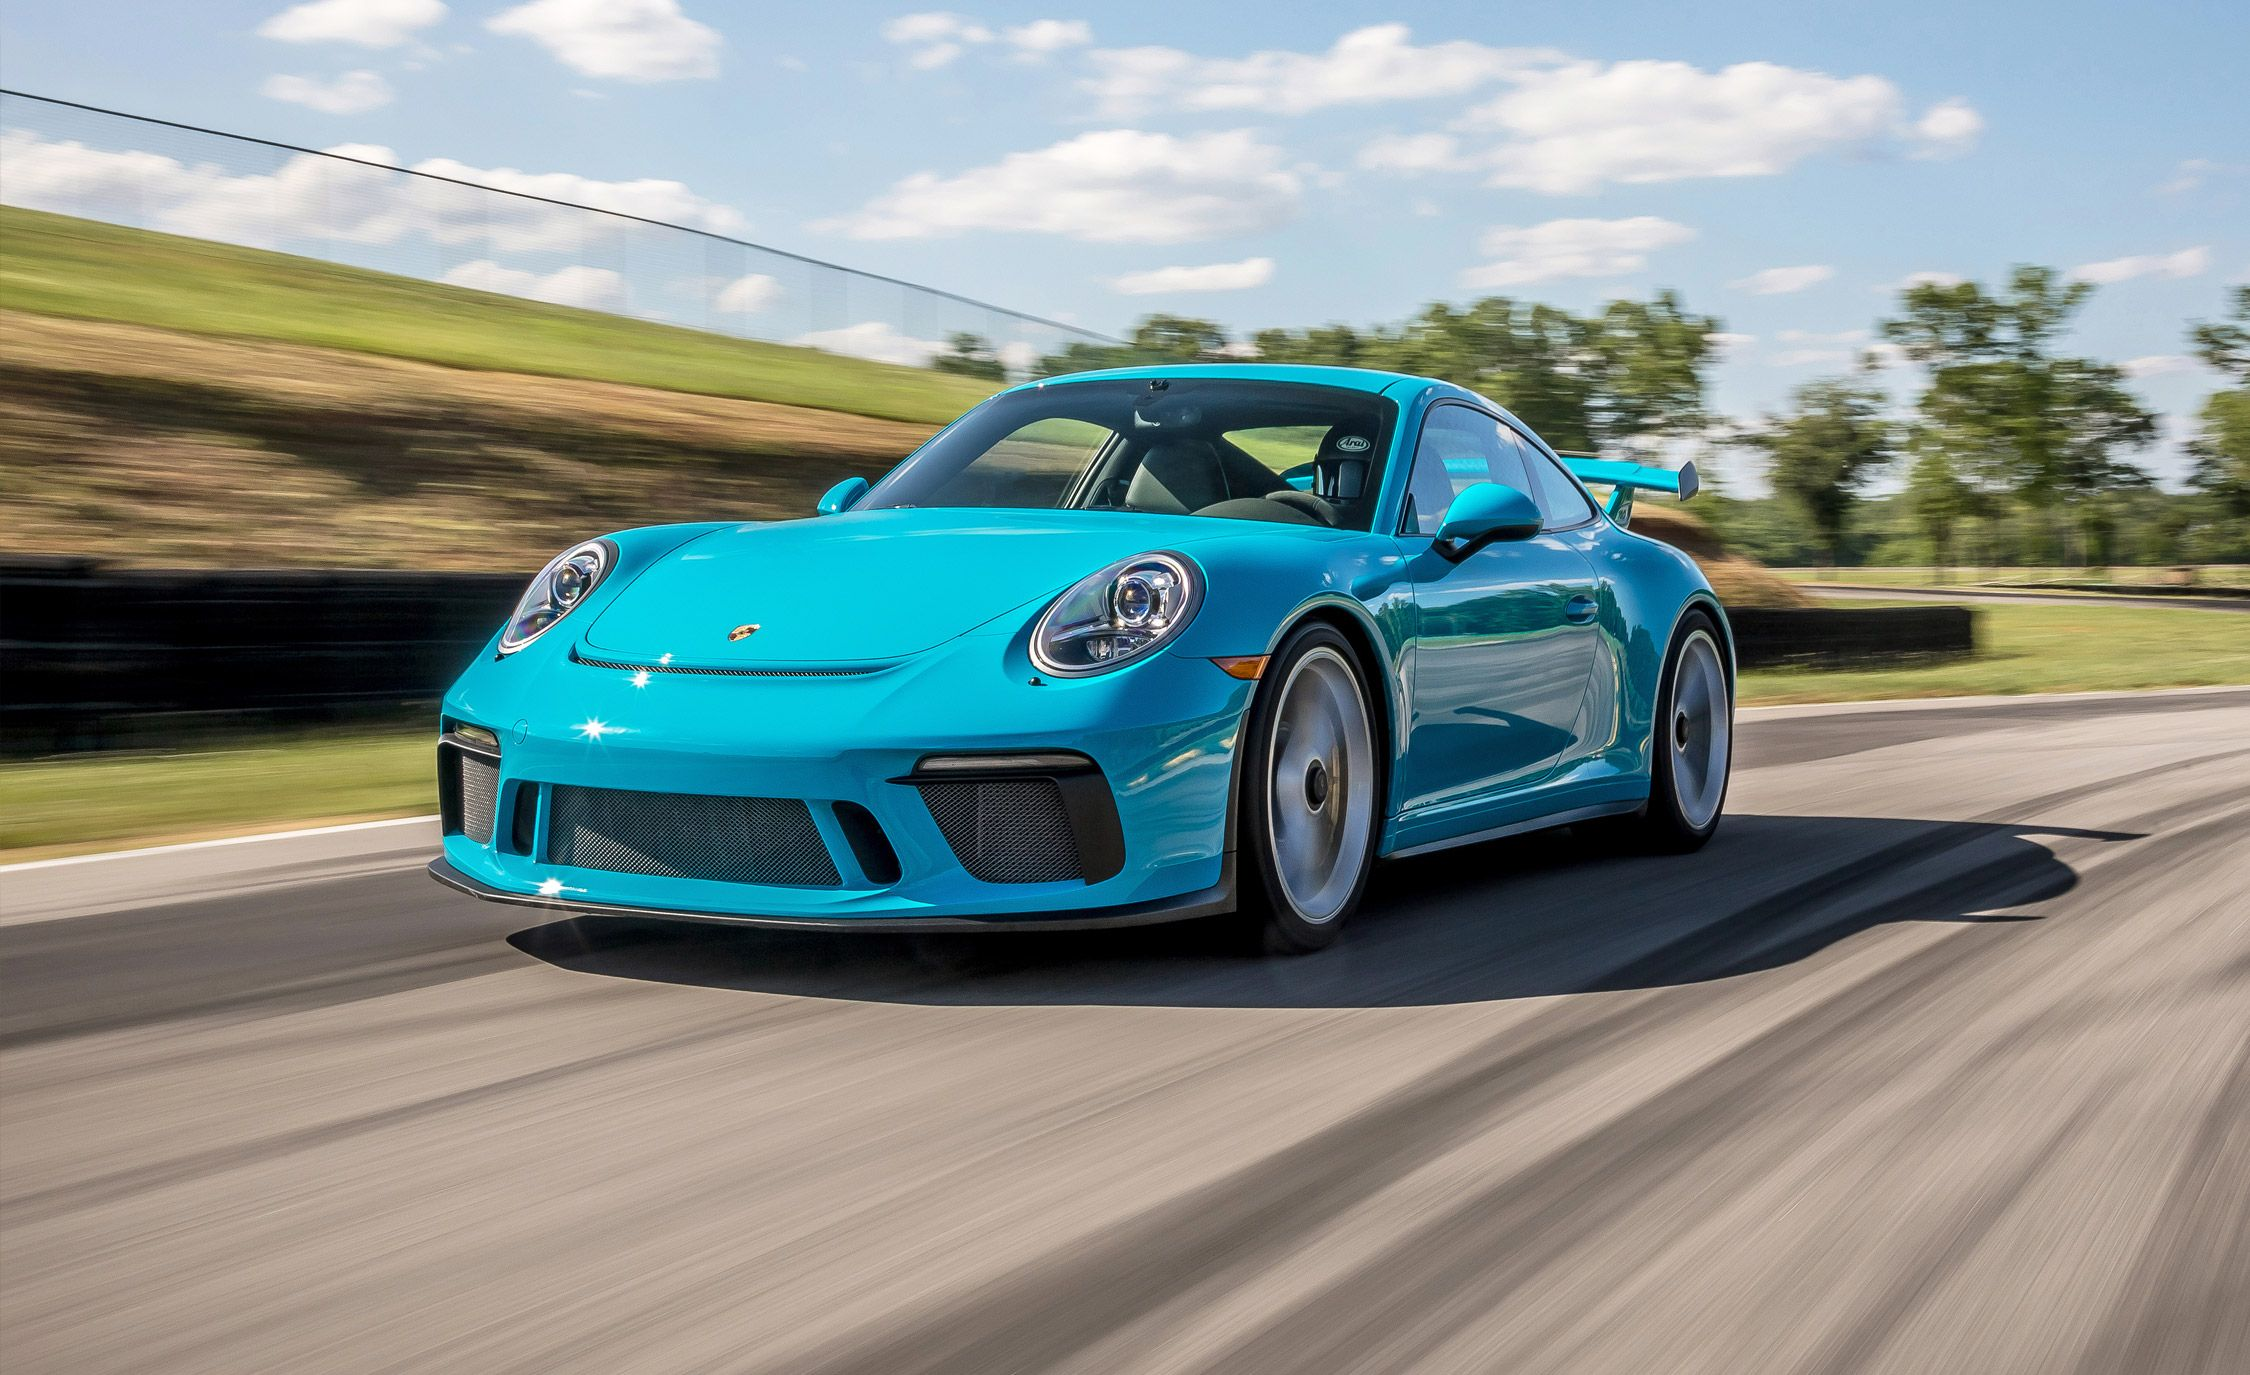 2021 porsche 911 gt3 / gt3 rs reviews | porsche 911 gt3 / gt3 rs